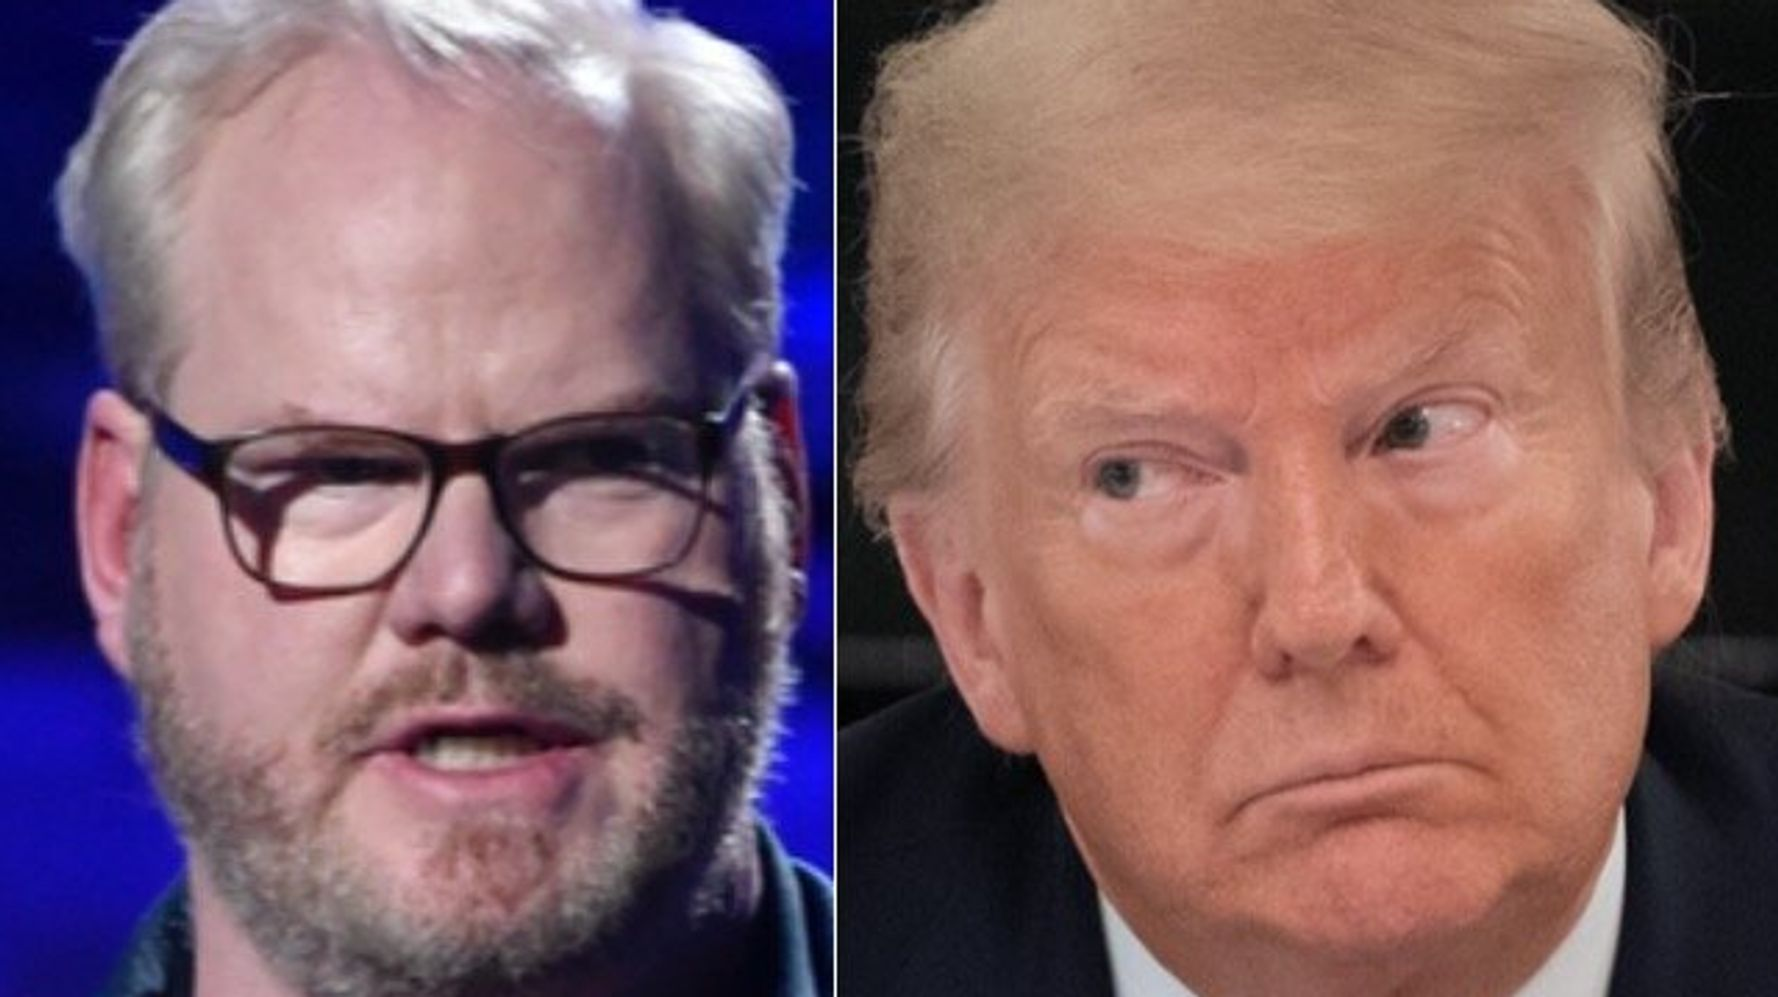 Comic Jim Gaffigan Strikes Back With 1 Simple Test For Trump Voters